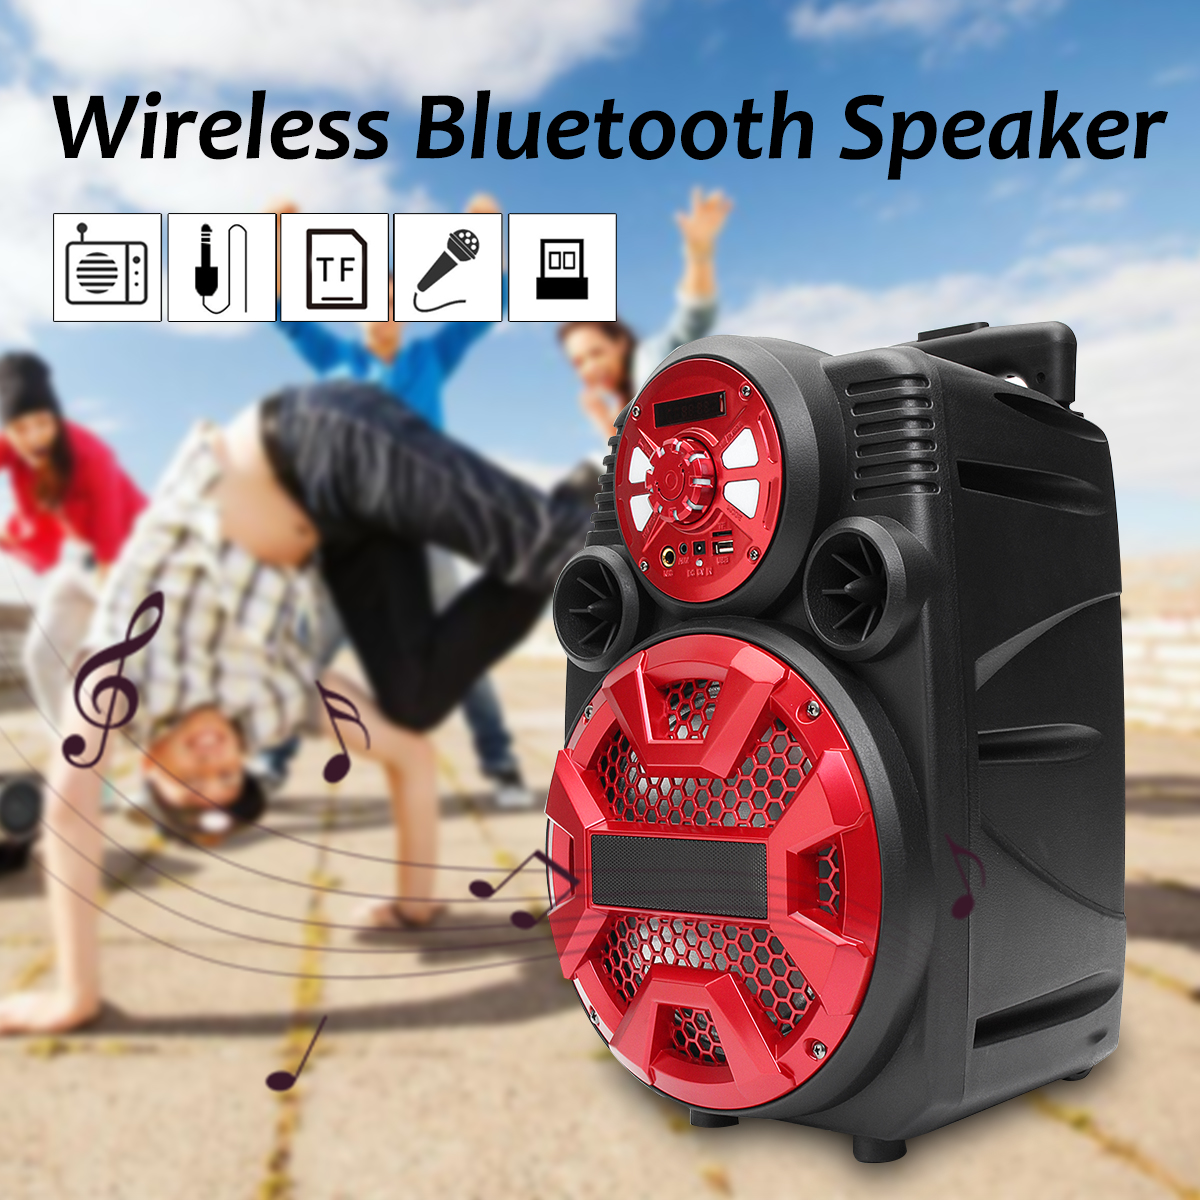 Led Lights bluetooth DJ Speaker Wireless Stereo Subwoofer Heavy Bass Speakers Music Player Support LCD AUX FM Radio TF CardsLed Lights bluetooth DJ Speaker Wireless Stereo Subwoofer Heavy Bass Speakers Music Player Support LCD AUX FM Radio TF Cards